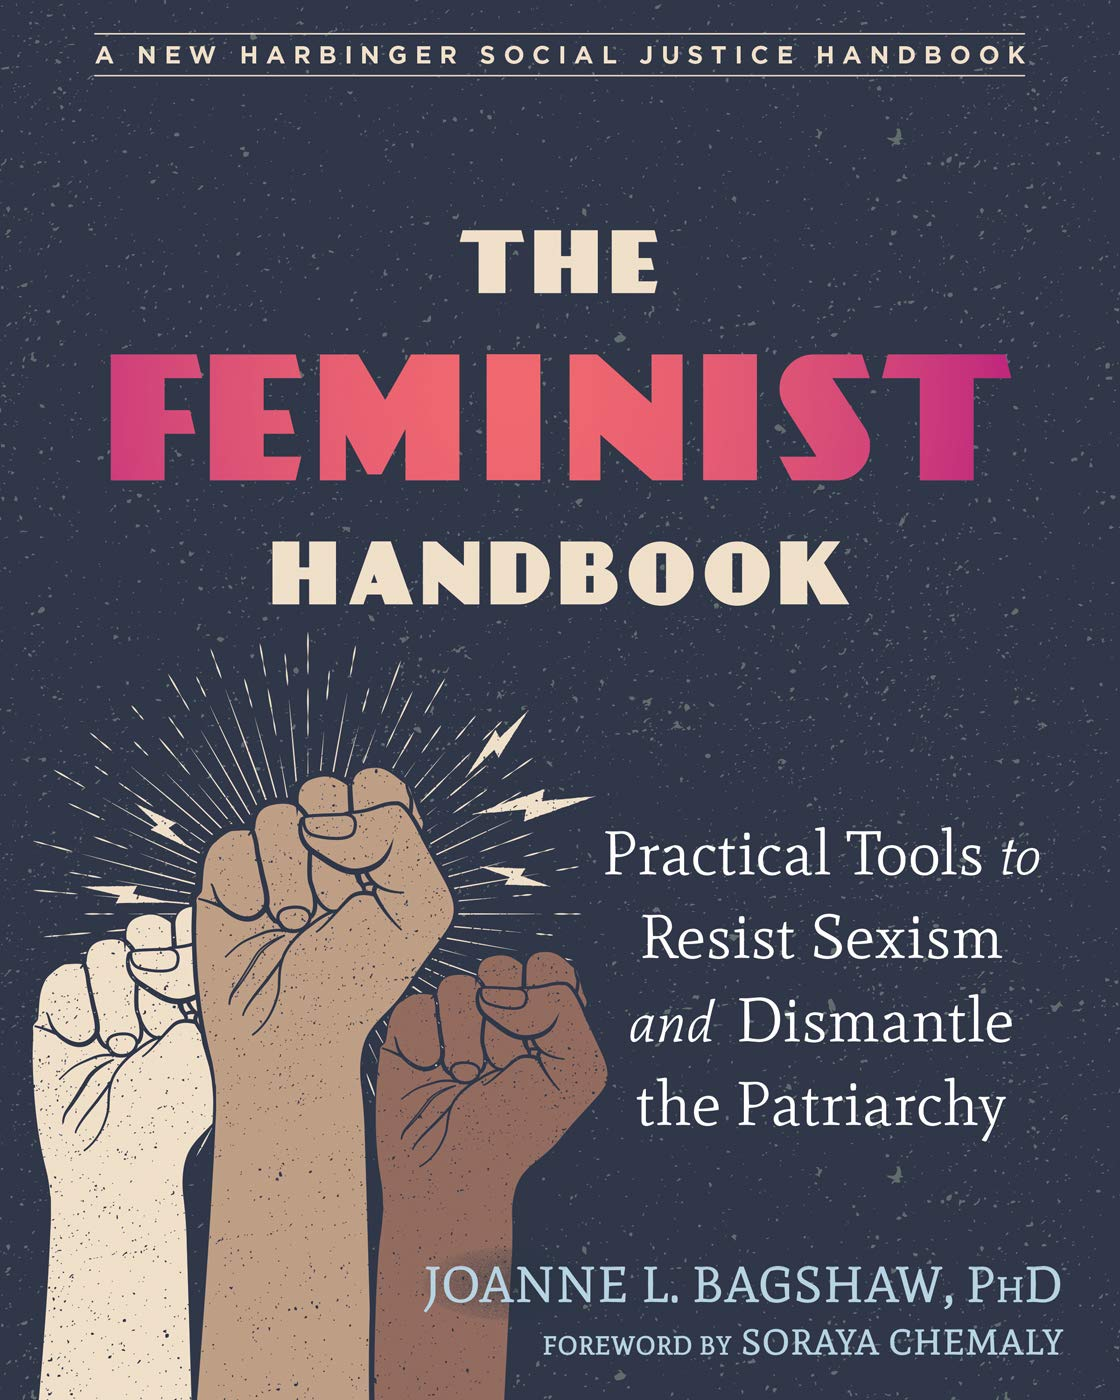 Image OfThe Feminist Handbook: Practical Tools To Resist Sexism And Dismantle The Patriarchy (The Social Justice Handbook Series)